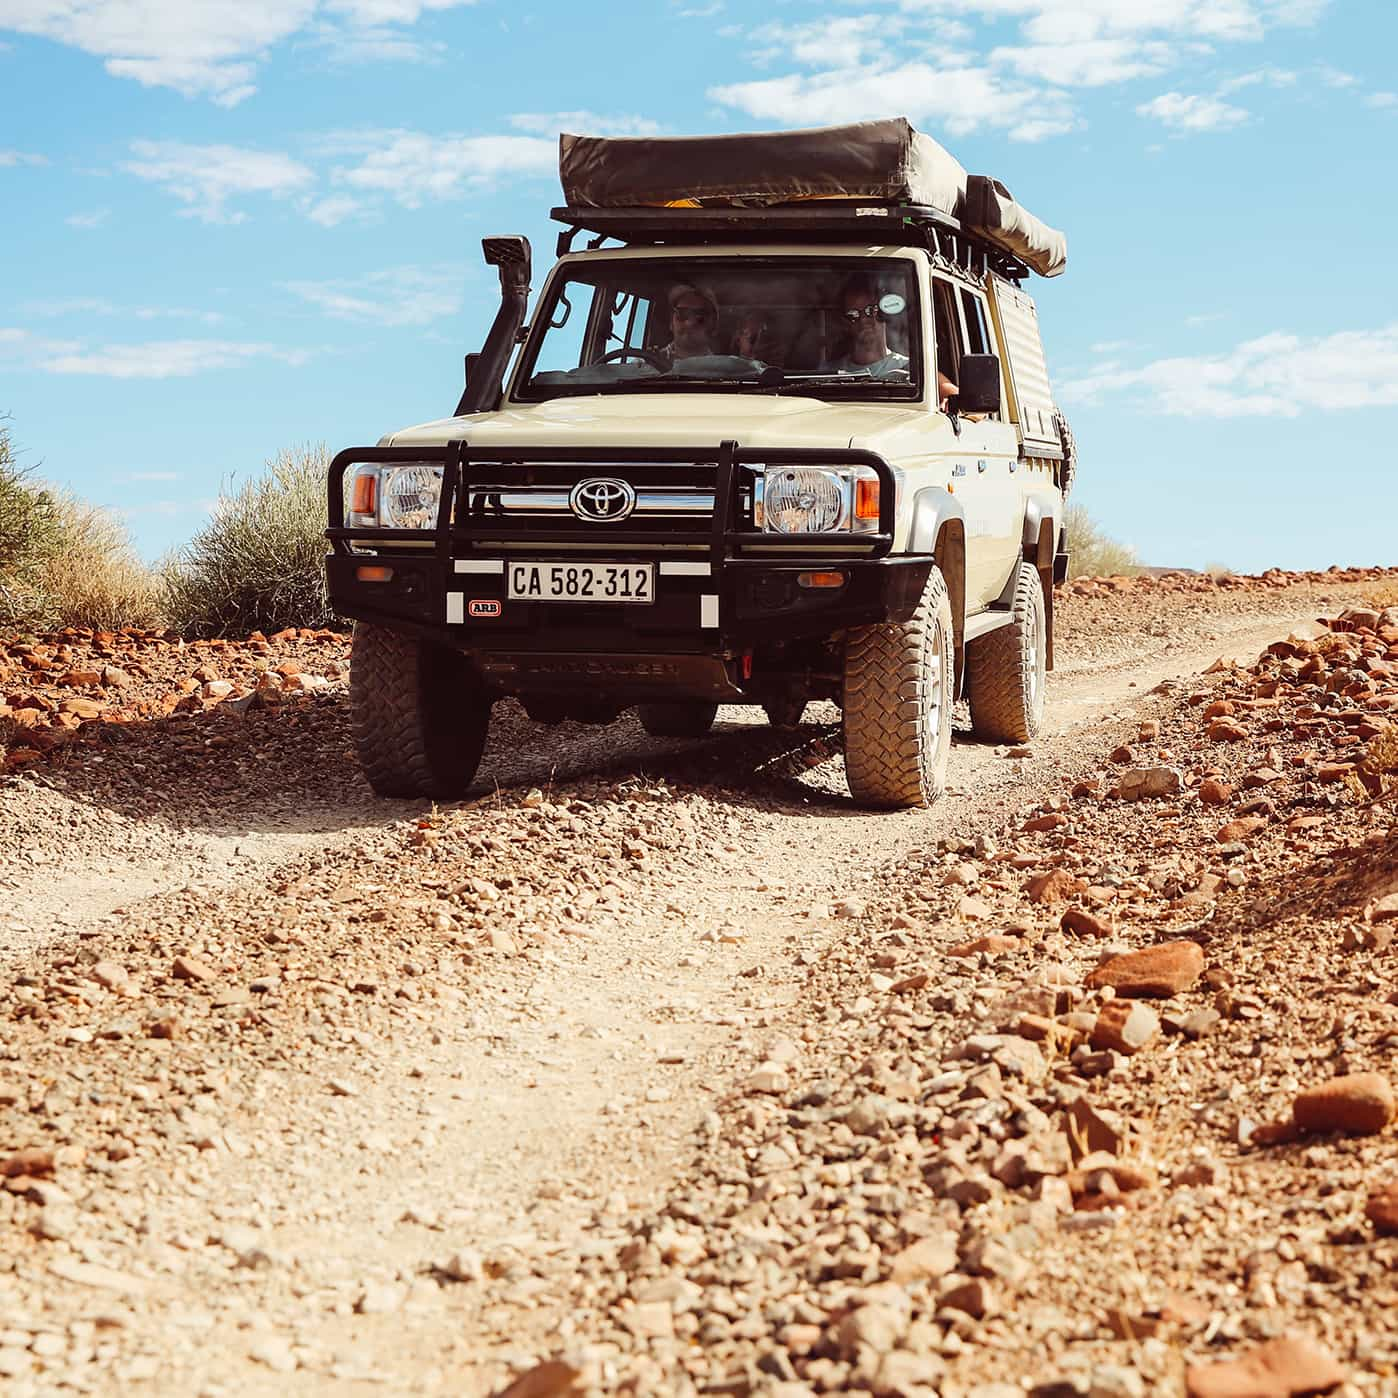 Closeup of Safari Drive Land Cruiser on a rubble back road in Nambia